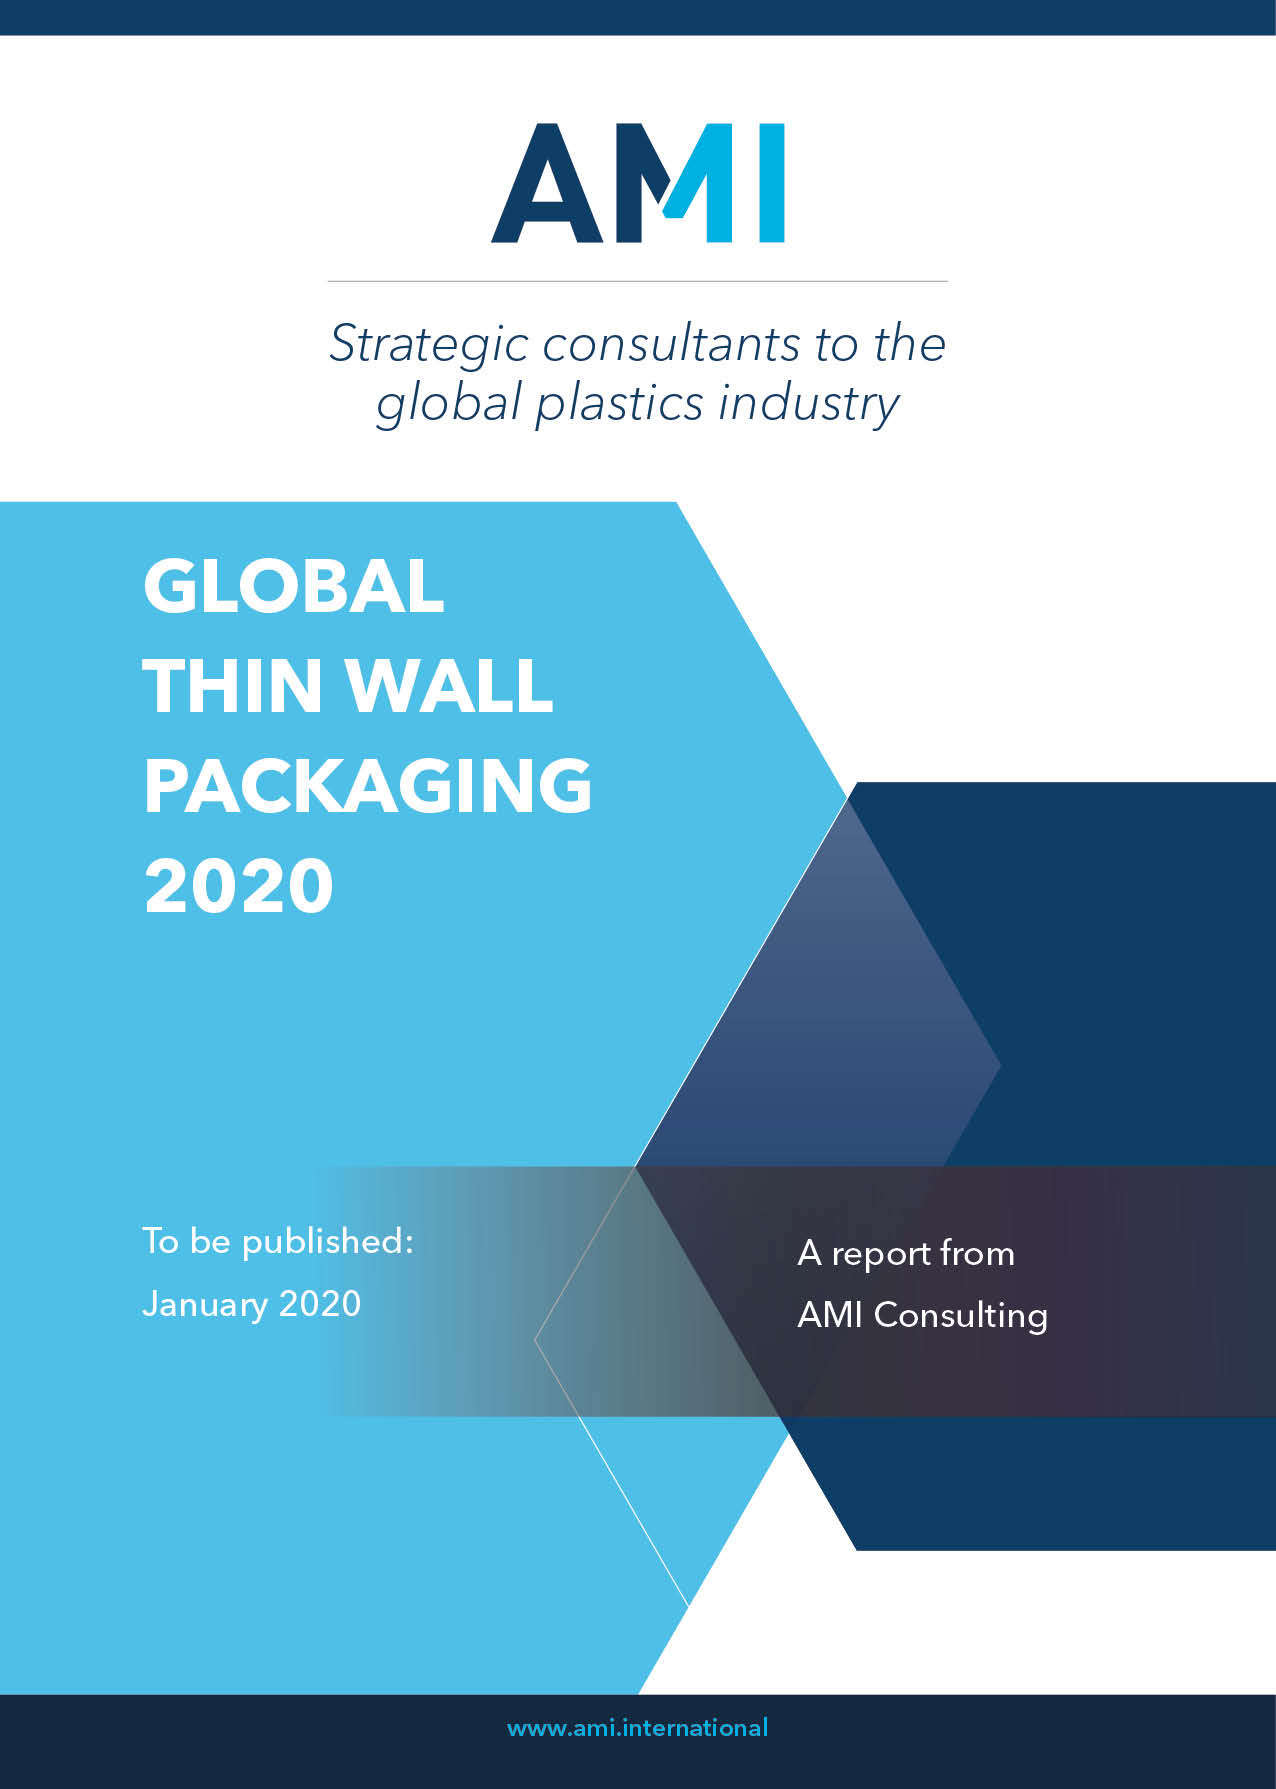 Global Thin Wall Packaging 2020